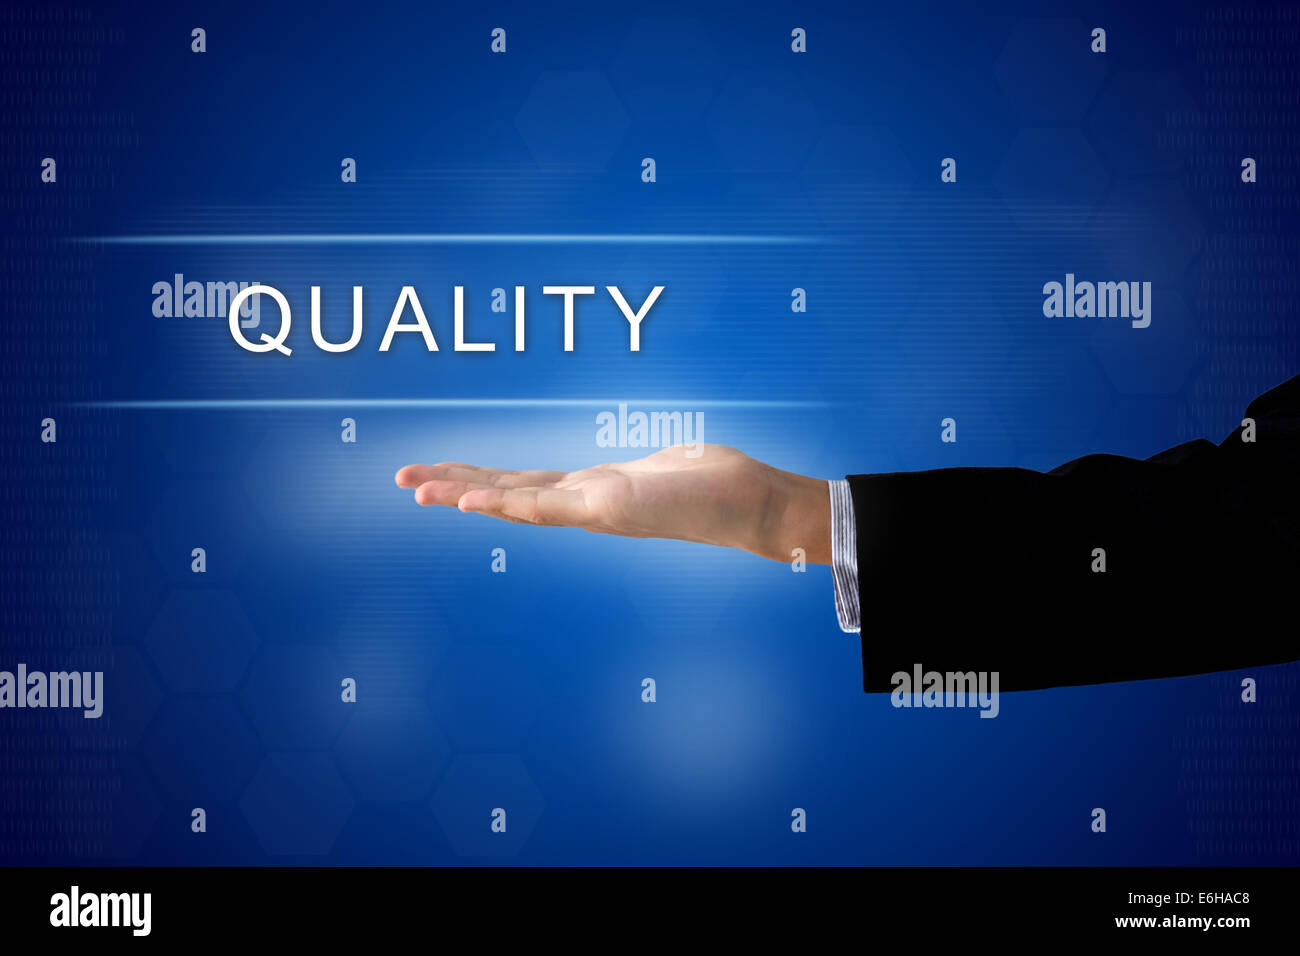 quality button with business hand on a touch screen interface - Stock Image